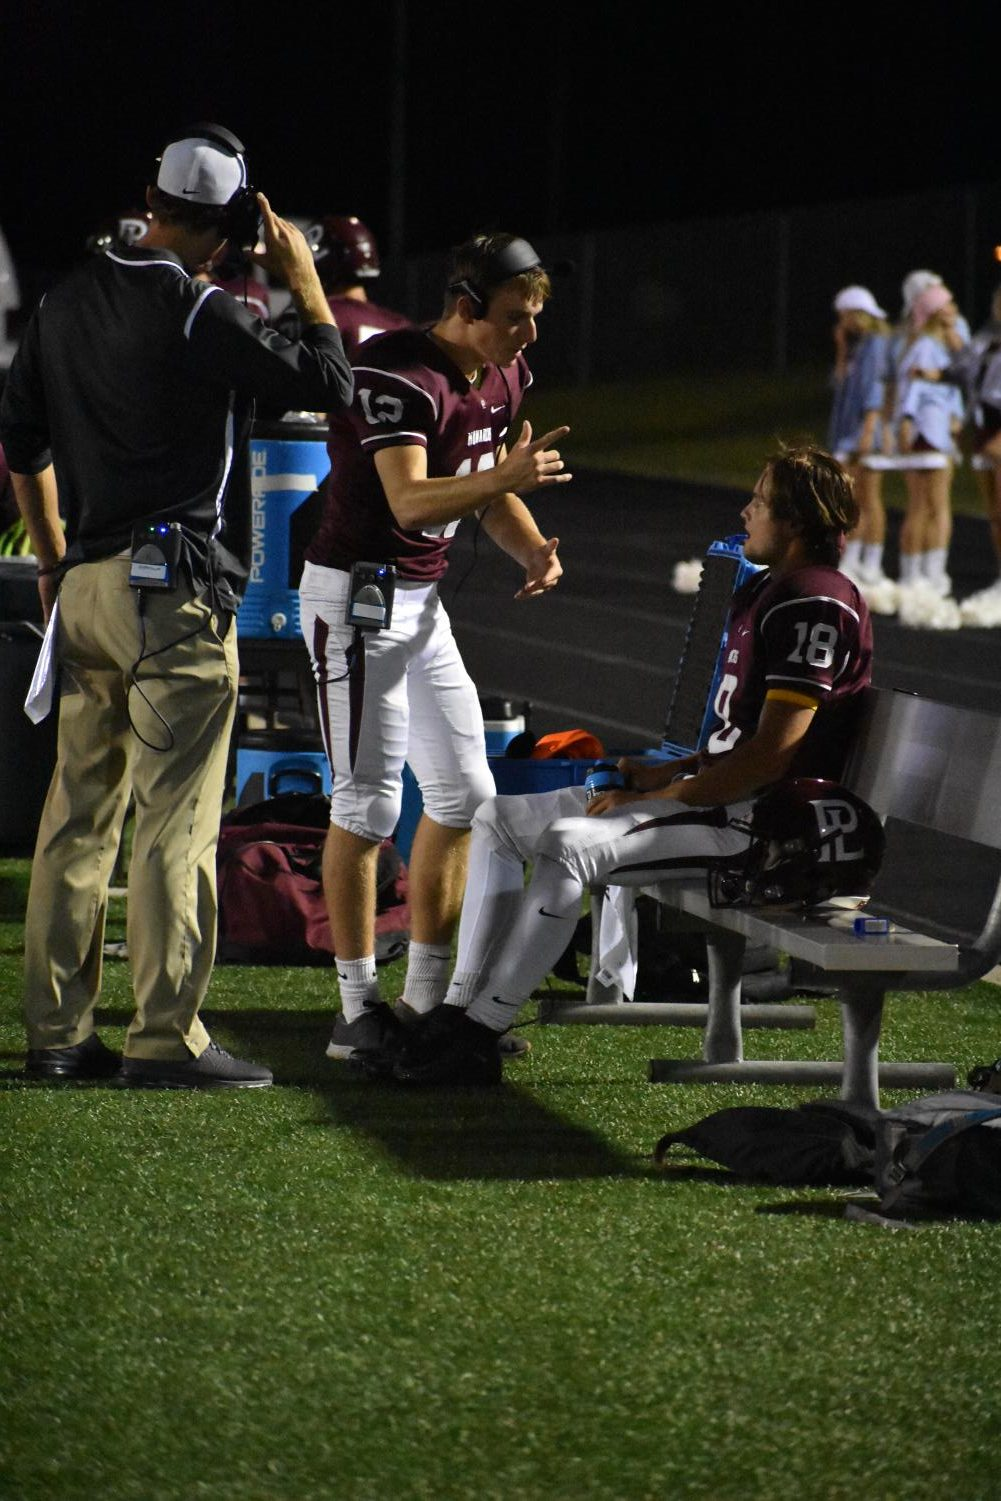 Conner Barnett gives some pointers to Logan Anderson during the game against Westside.